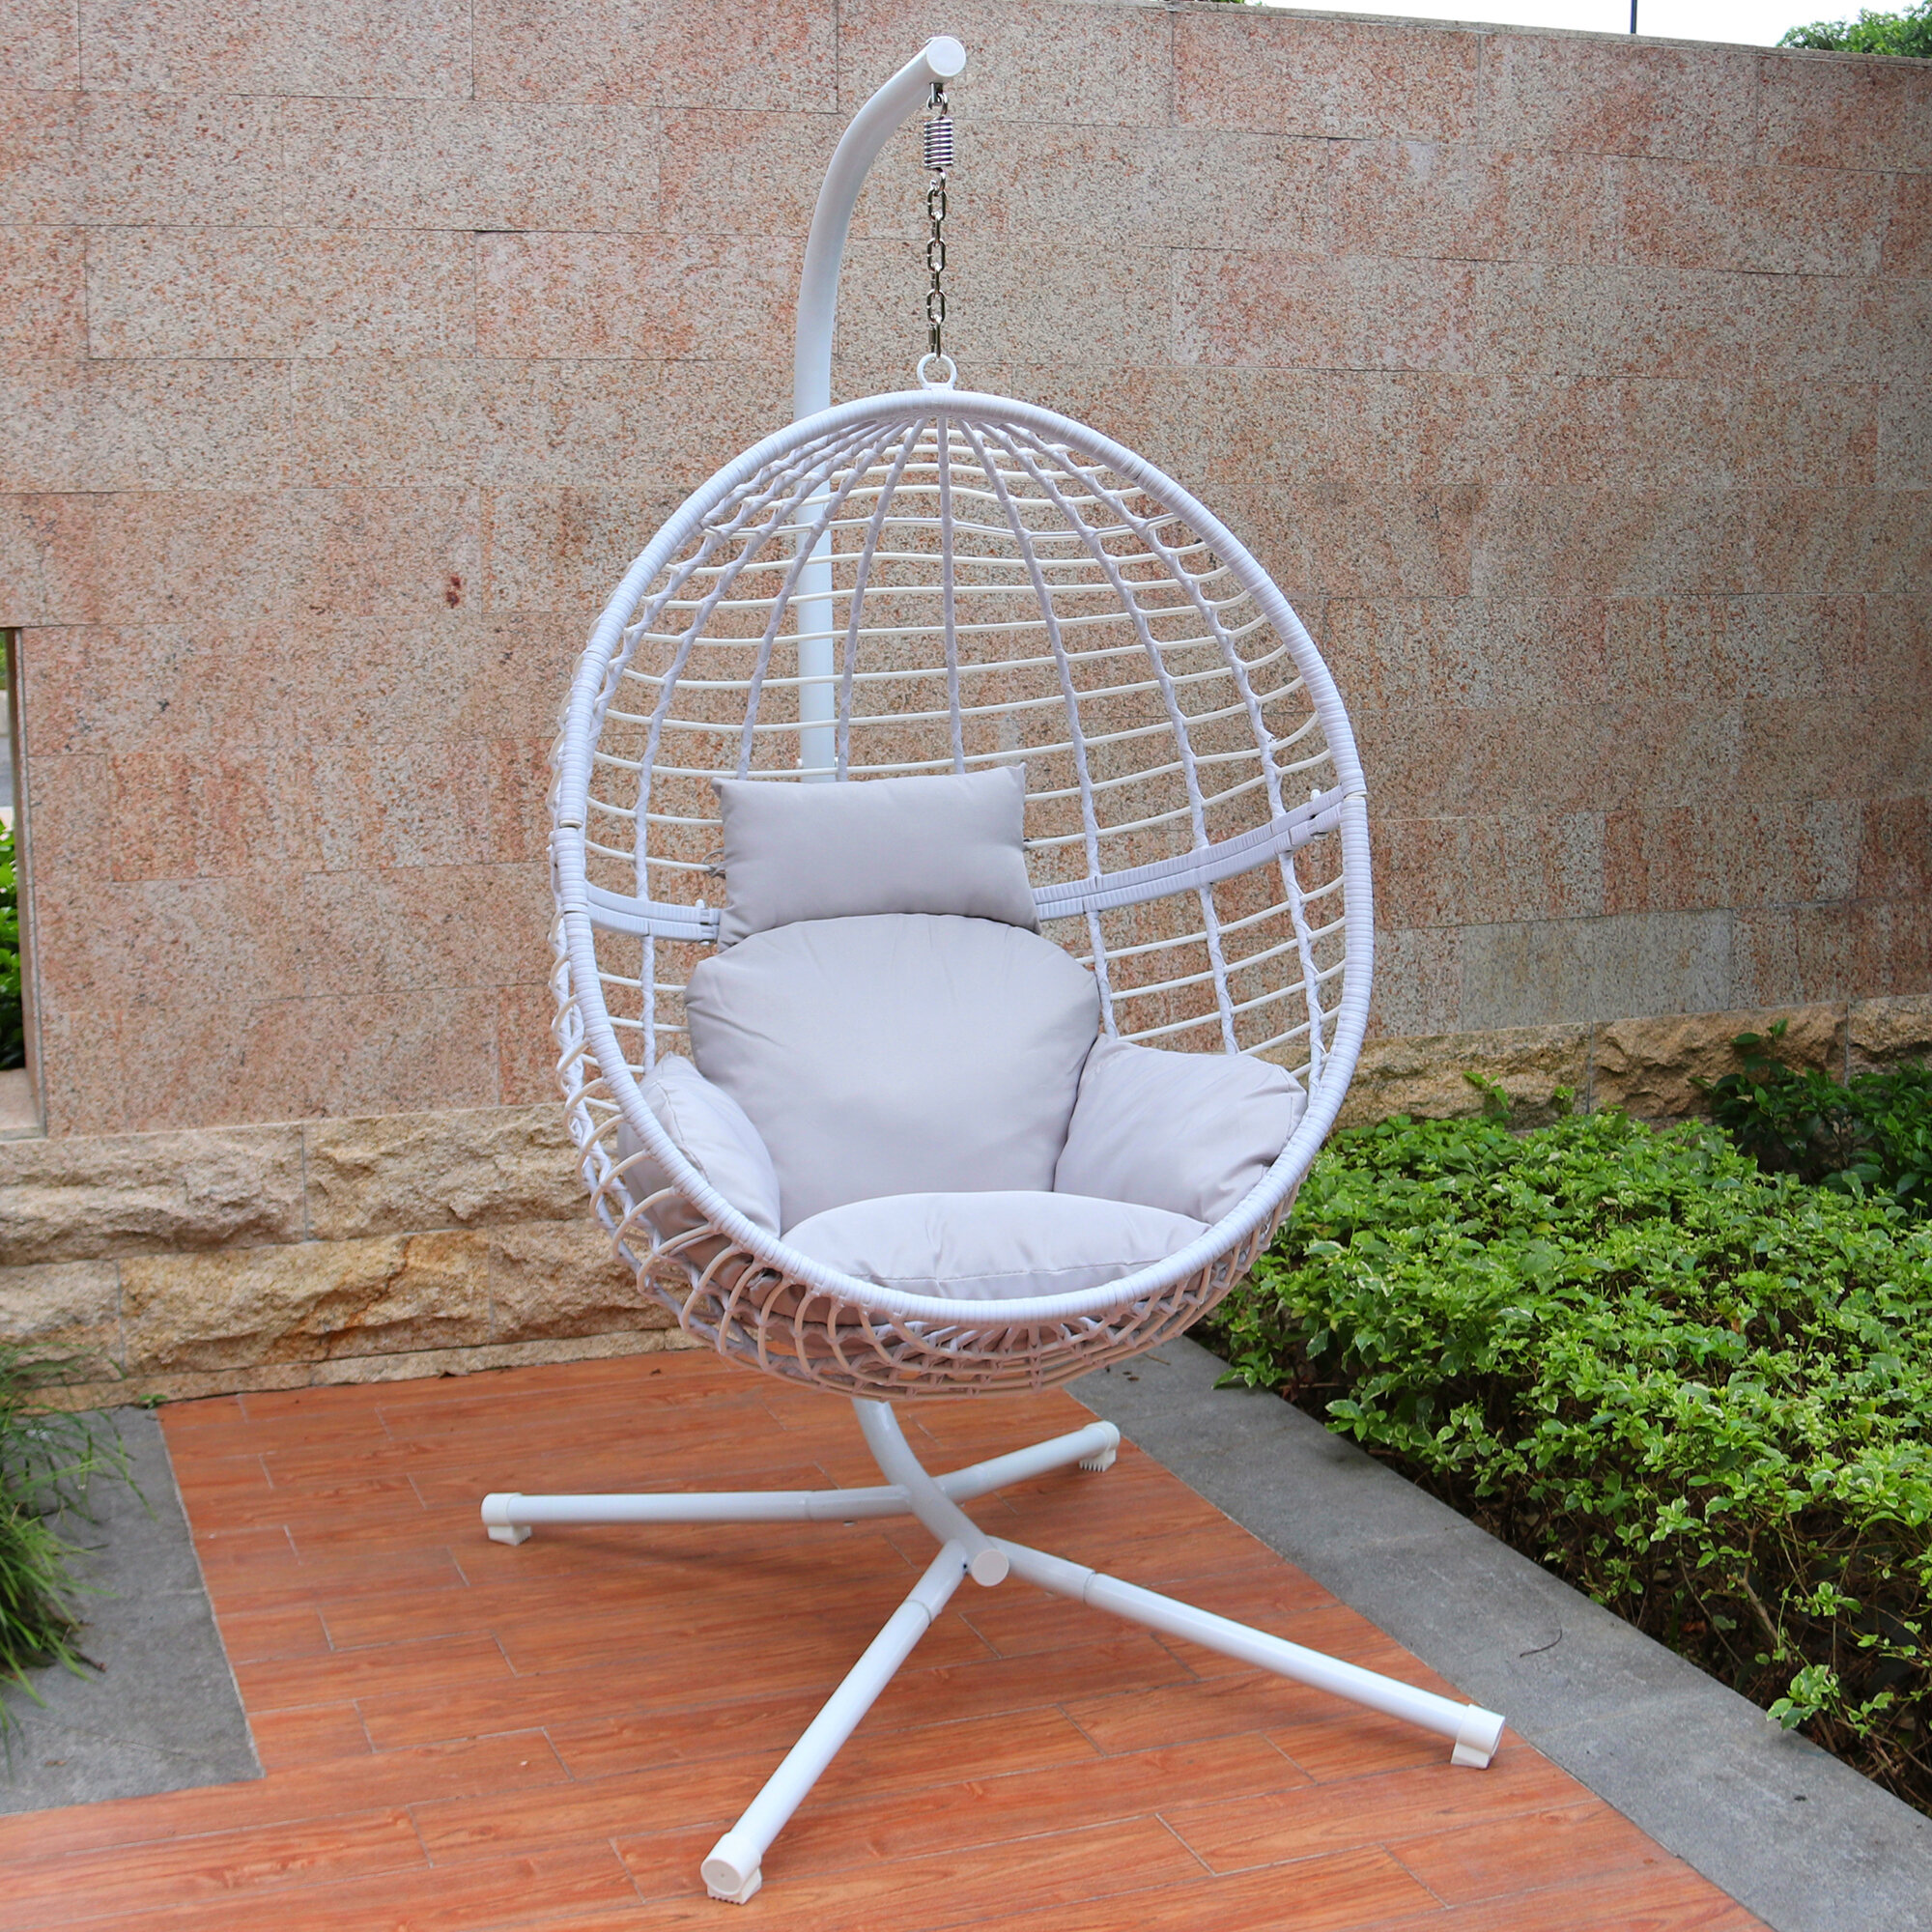 Tremendous Wolsingham Outdoor Wicker Hanging Basket Swing Chair With Stand Creativecarmelina Interior Chair Design Creativecarmelinacom